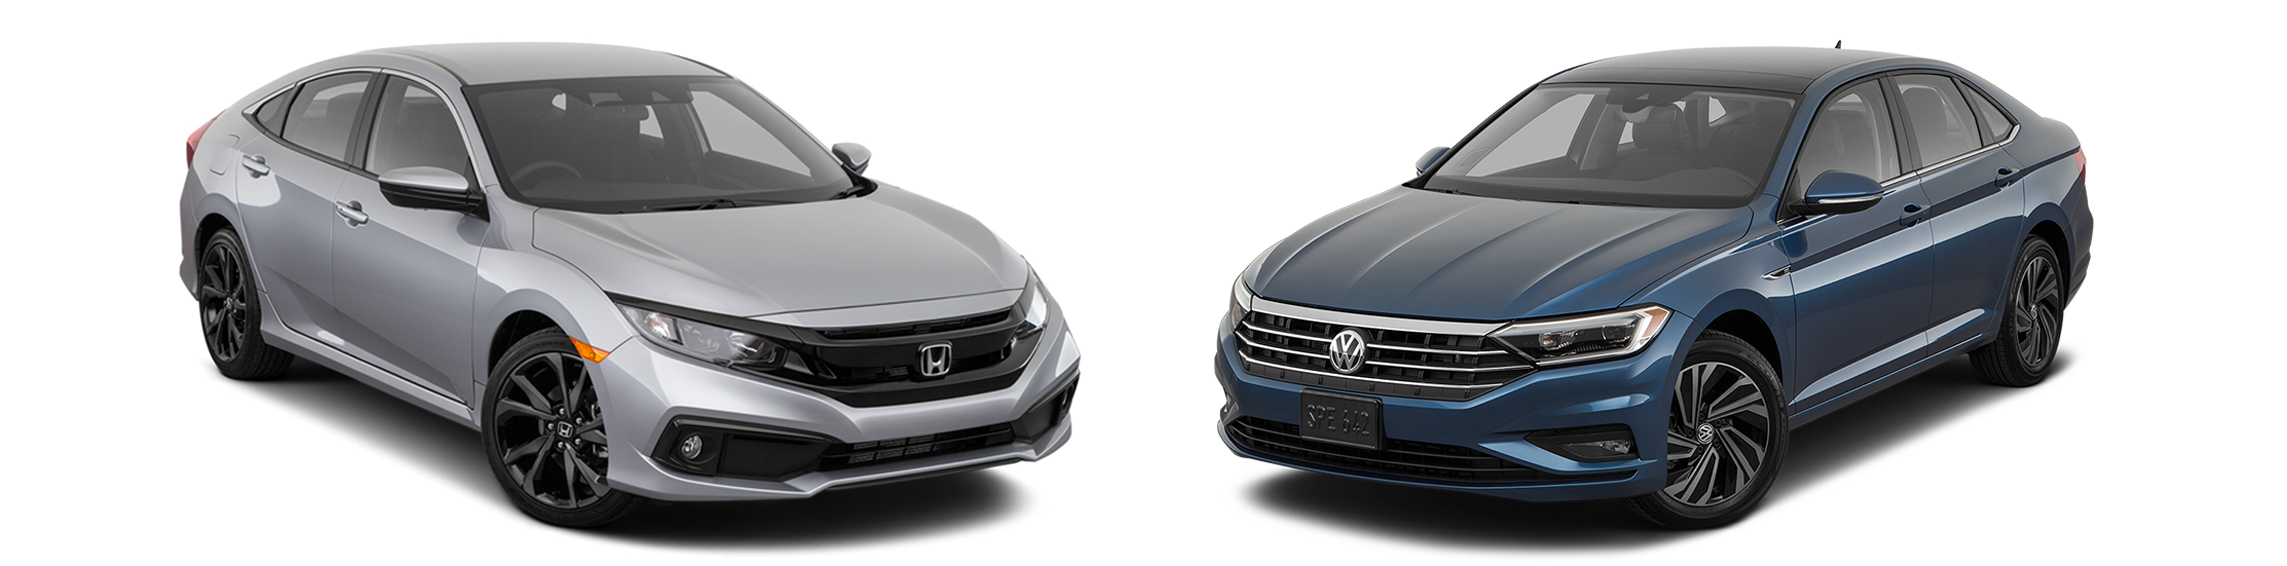 2019 Honda Civic vs. 2019 Wolkswagen Jetta